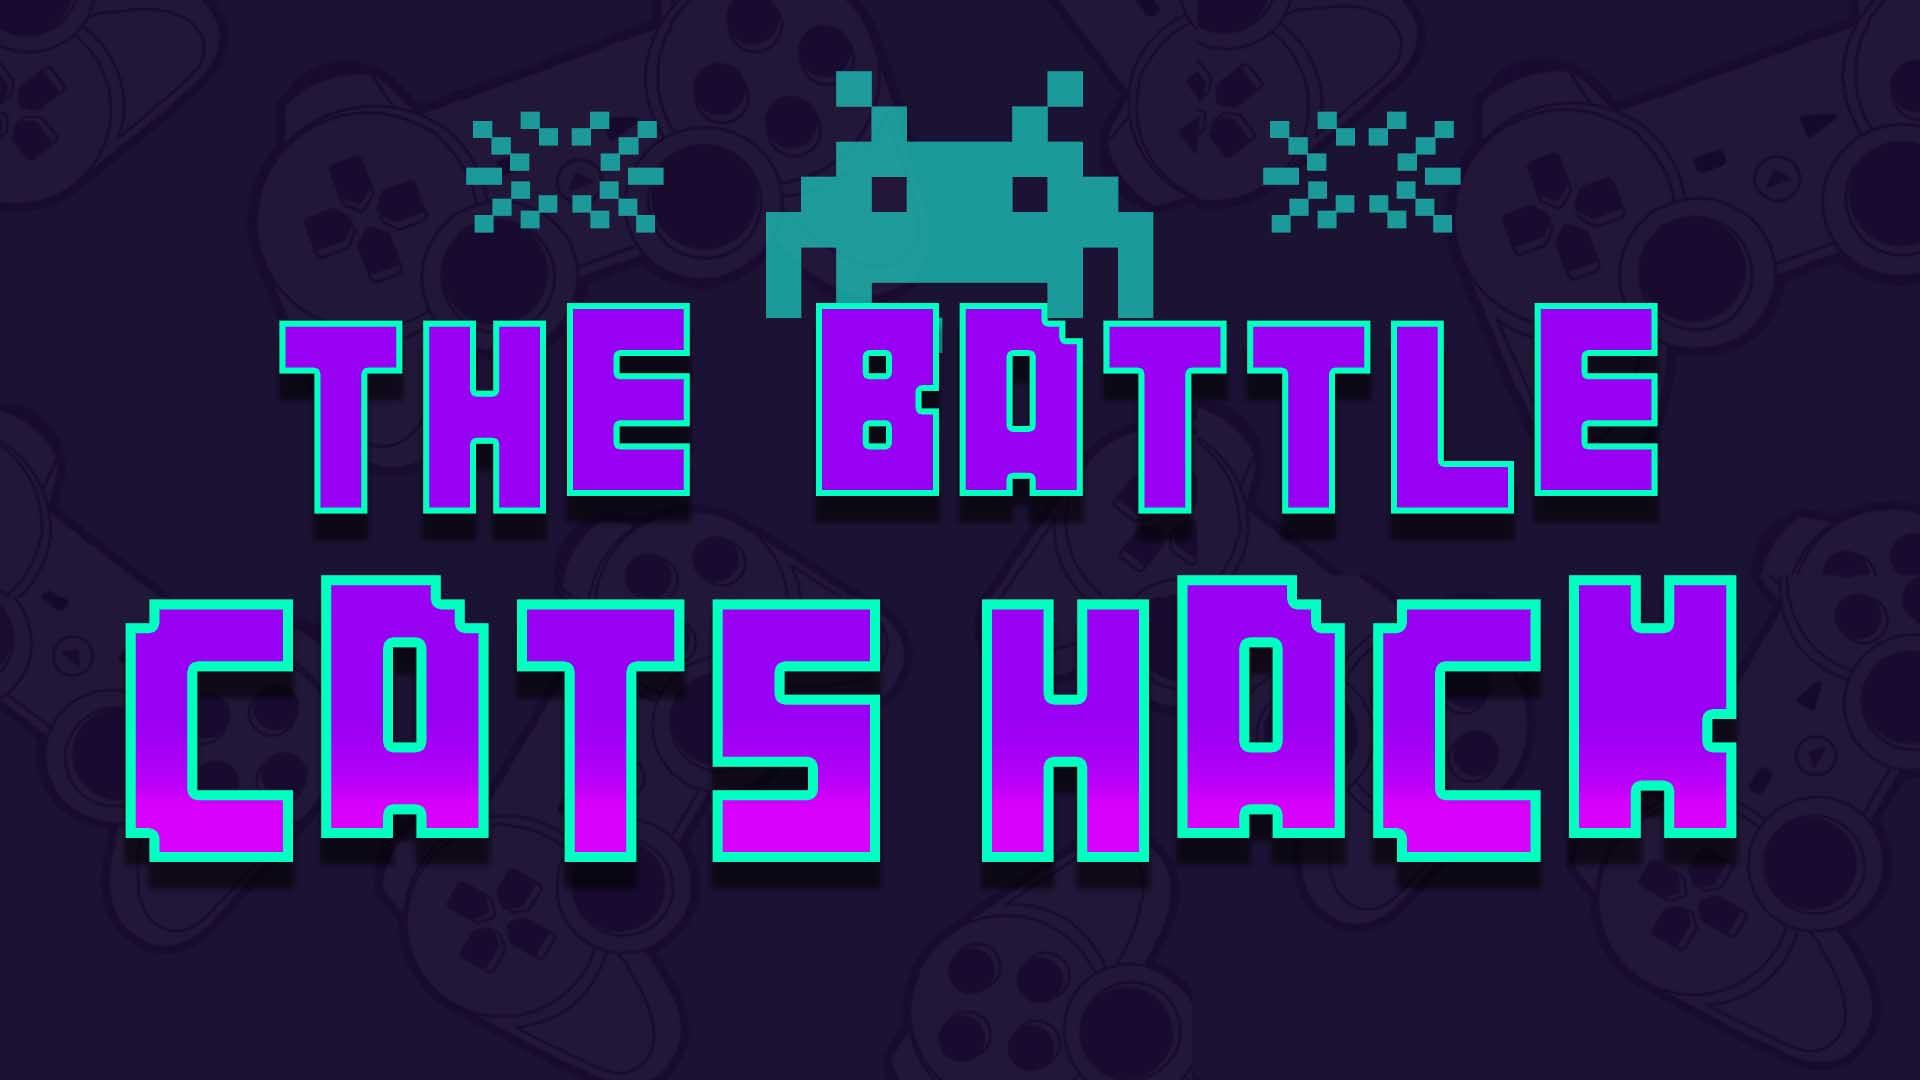 Hack For The Battle Cats Game Free Cat Food Cheats Cat